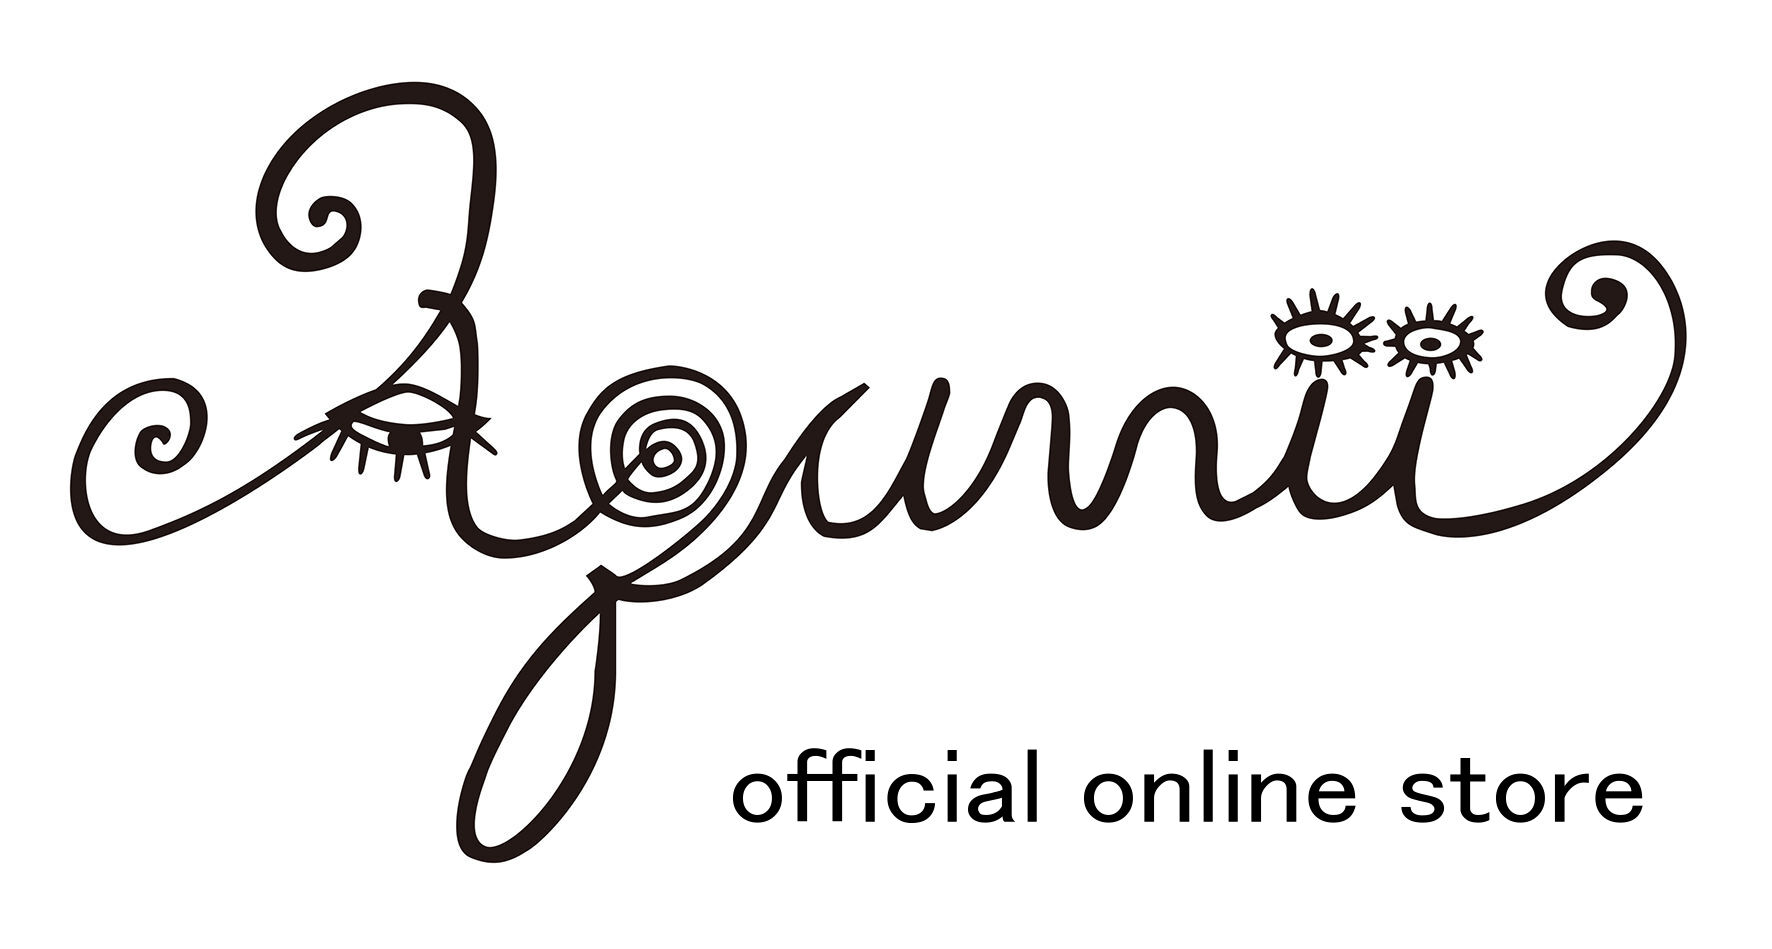 Aquvii official online store